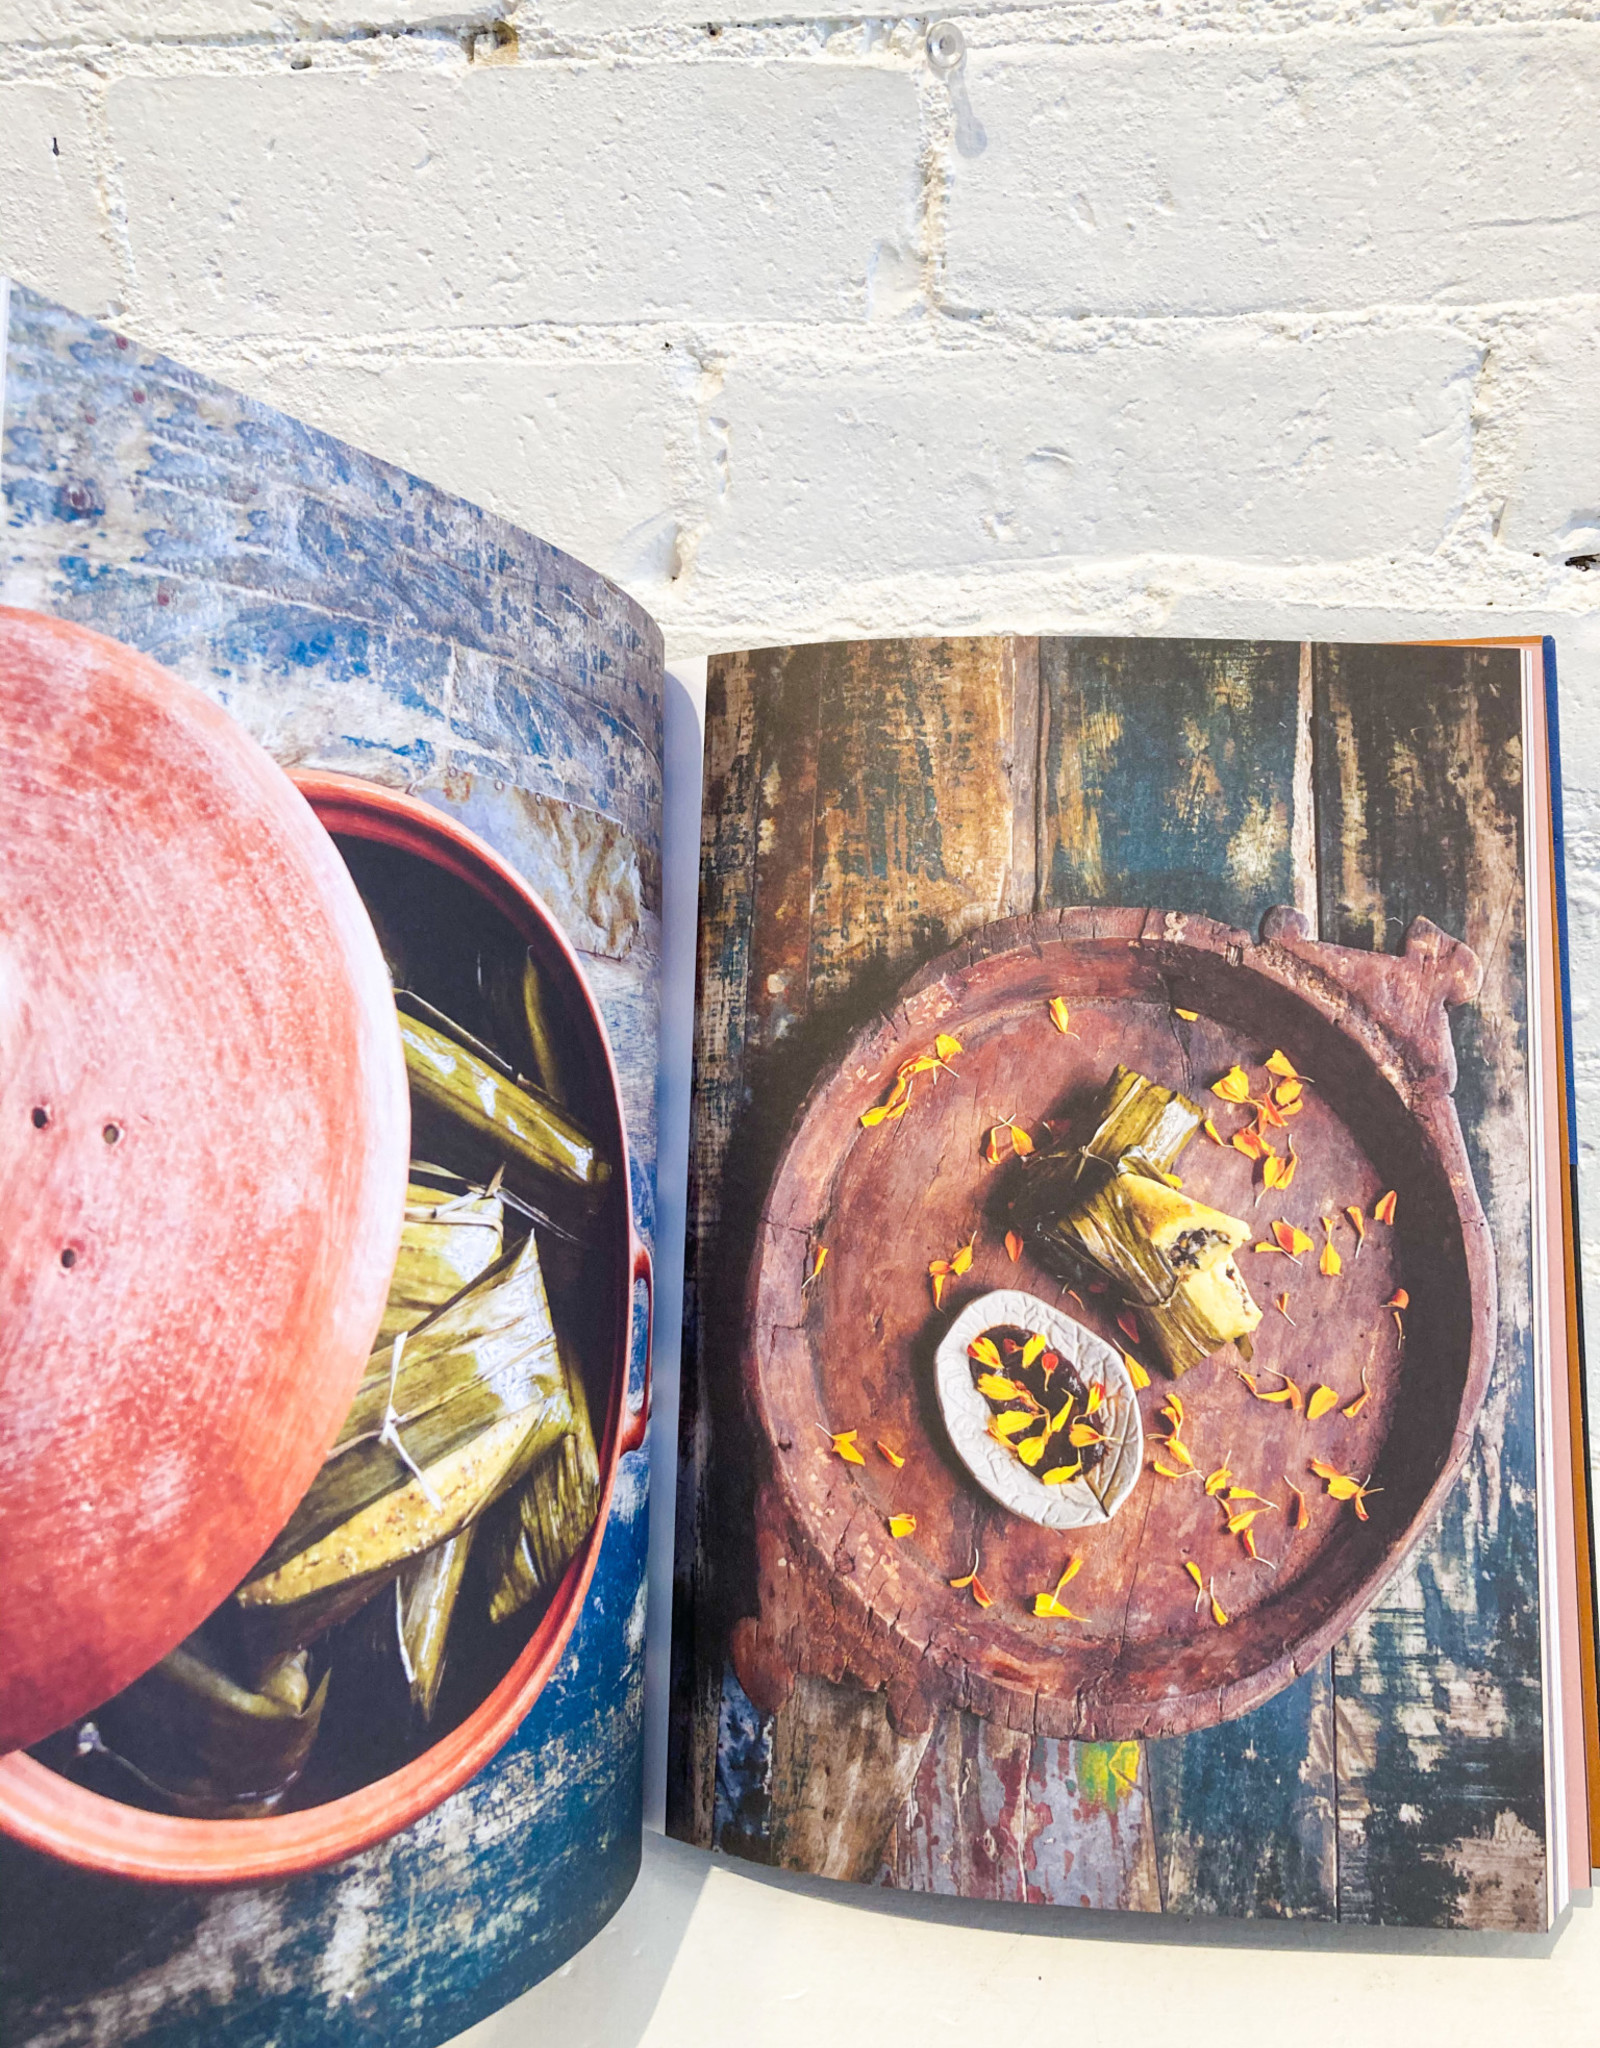 Cooking in Marfa by Virginia Lebermann and Rocky Barnette